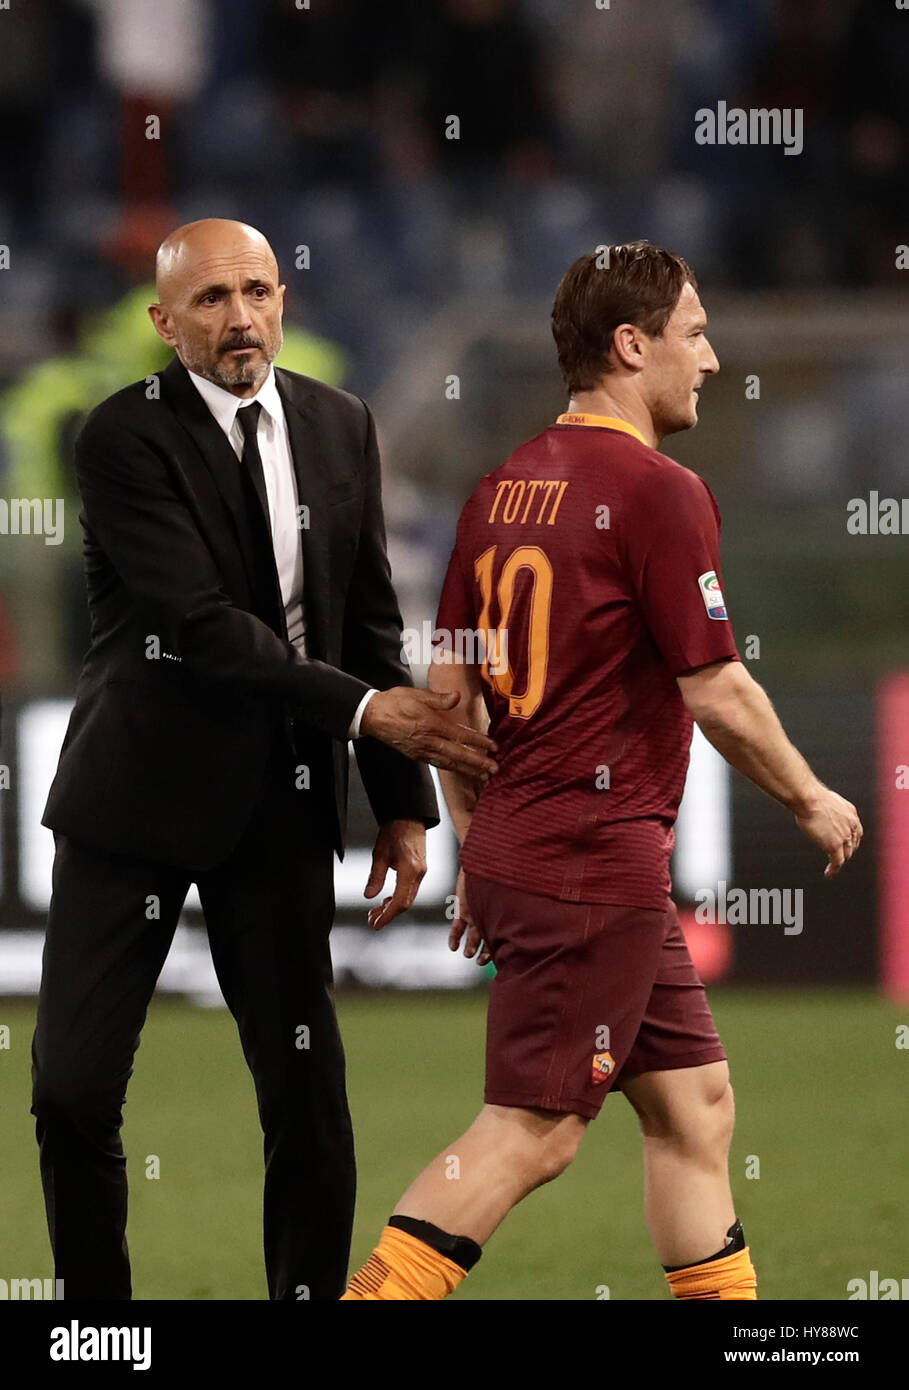 Francesco Totti Spalletti High Resolution Stock Photography and Images -  Alamy